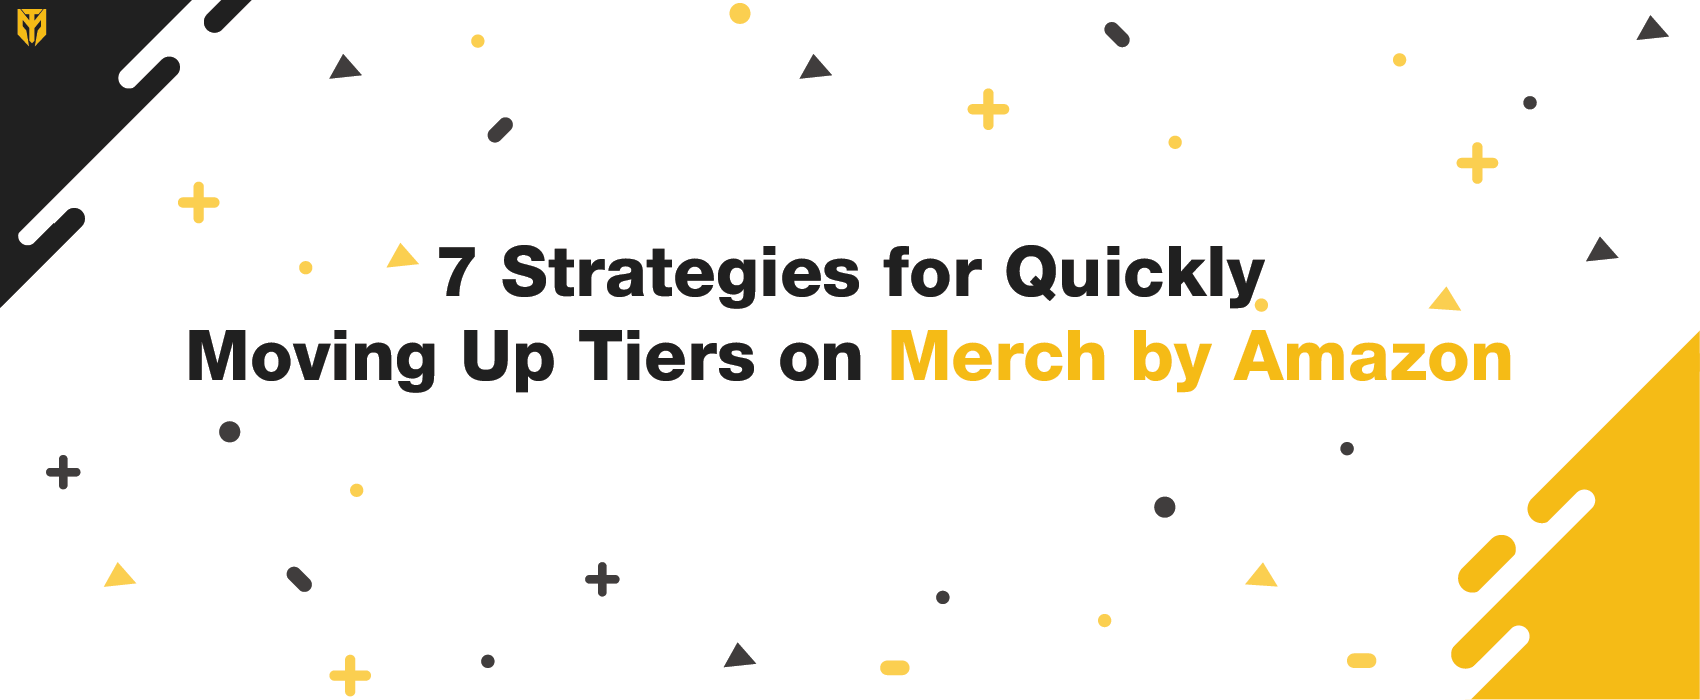 7 Strategies for Quickly Moving Up Tiers on Merch by Amazon